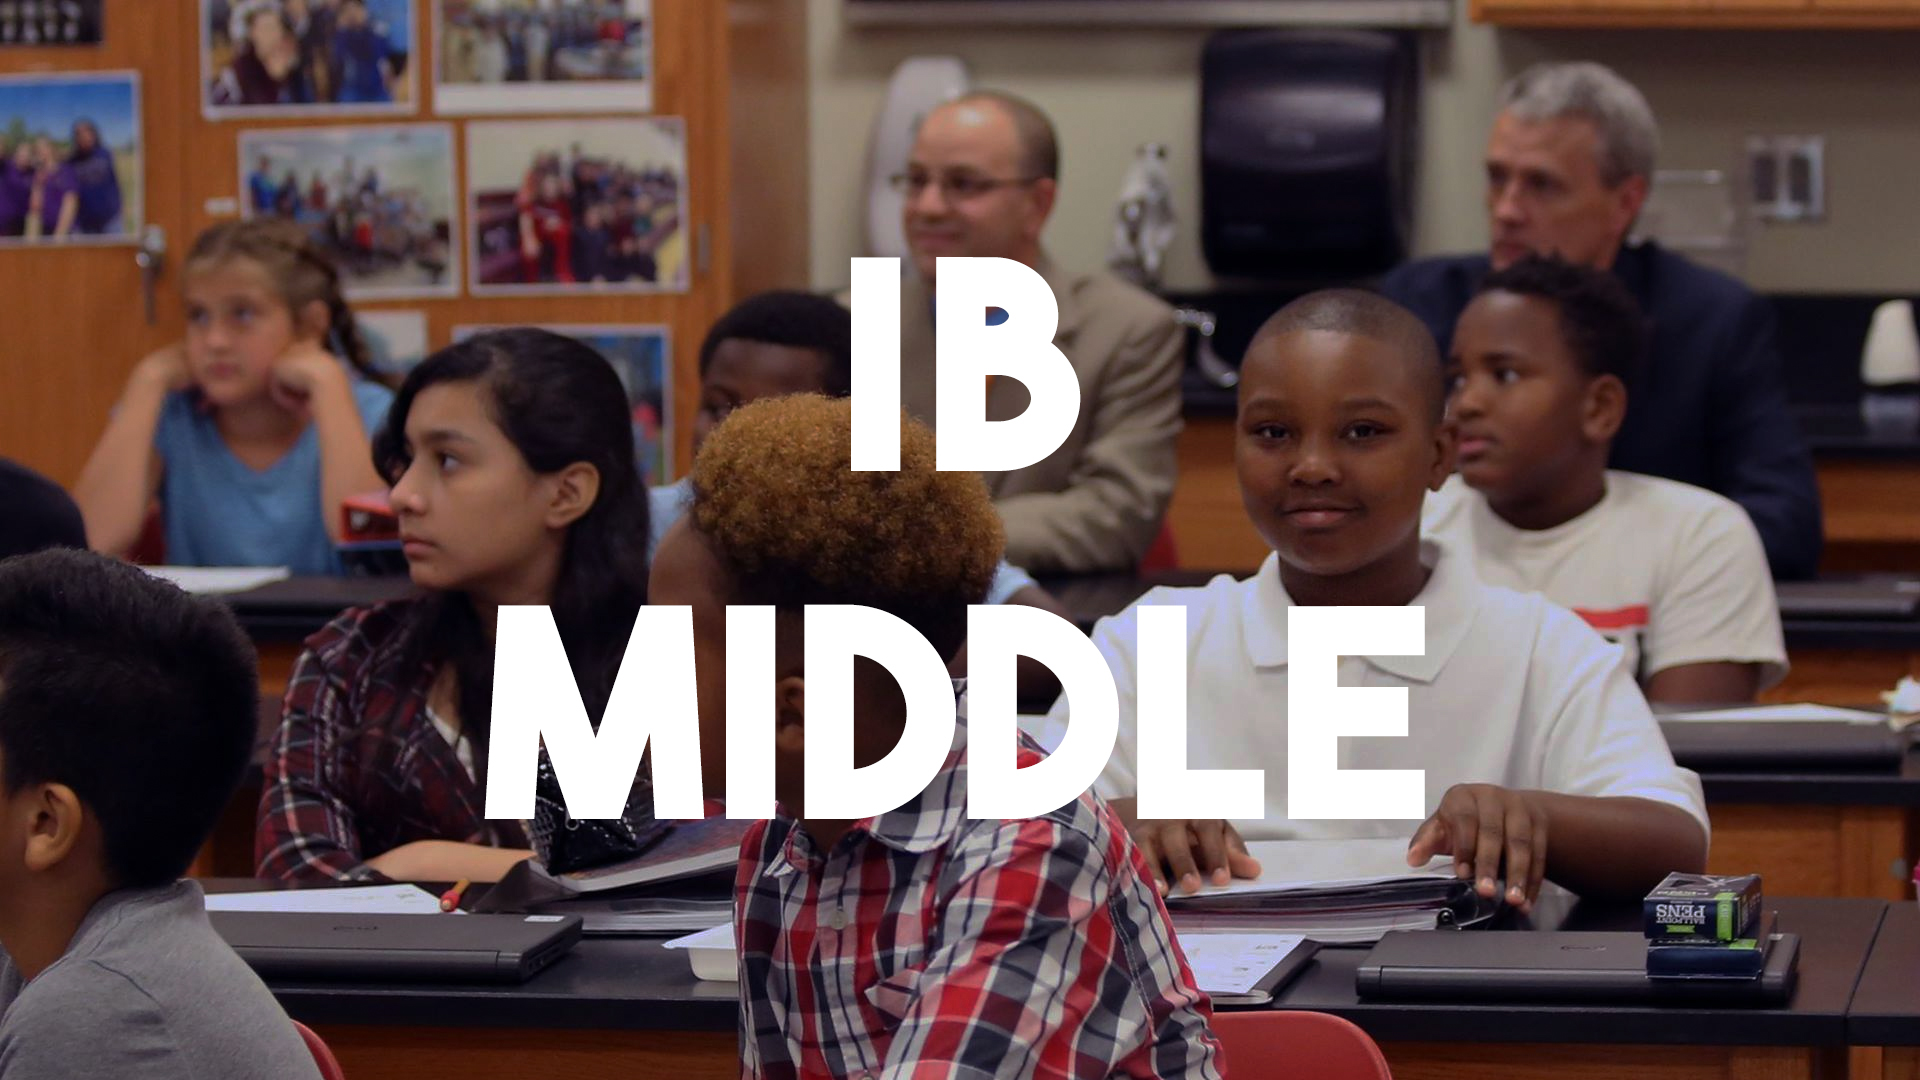 IB Middle